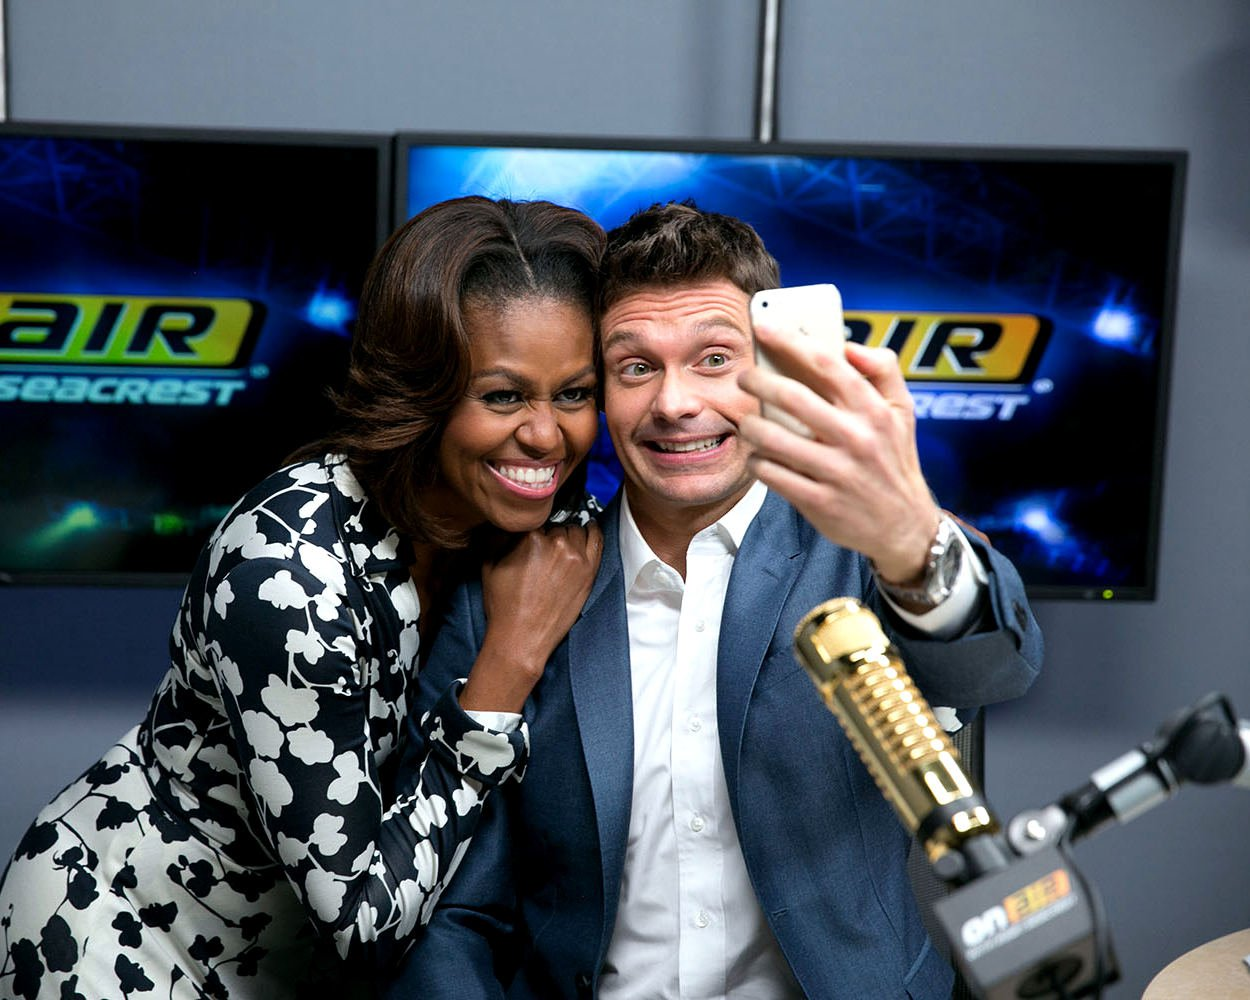 FIRST LADY MICHELLE OBAMA TAKES SELFIE WITH RYAN SEACREST - 8X10 PHOTO (CC-123)